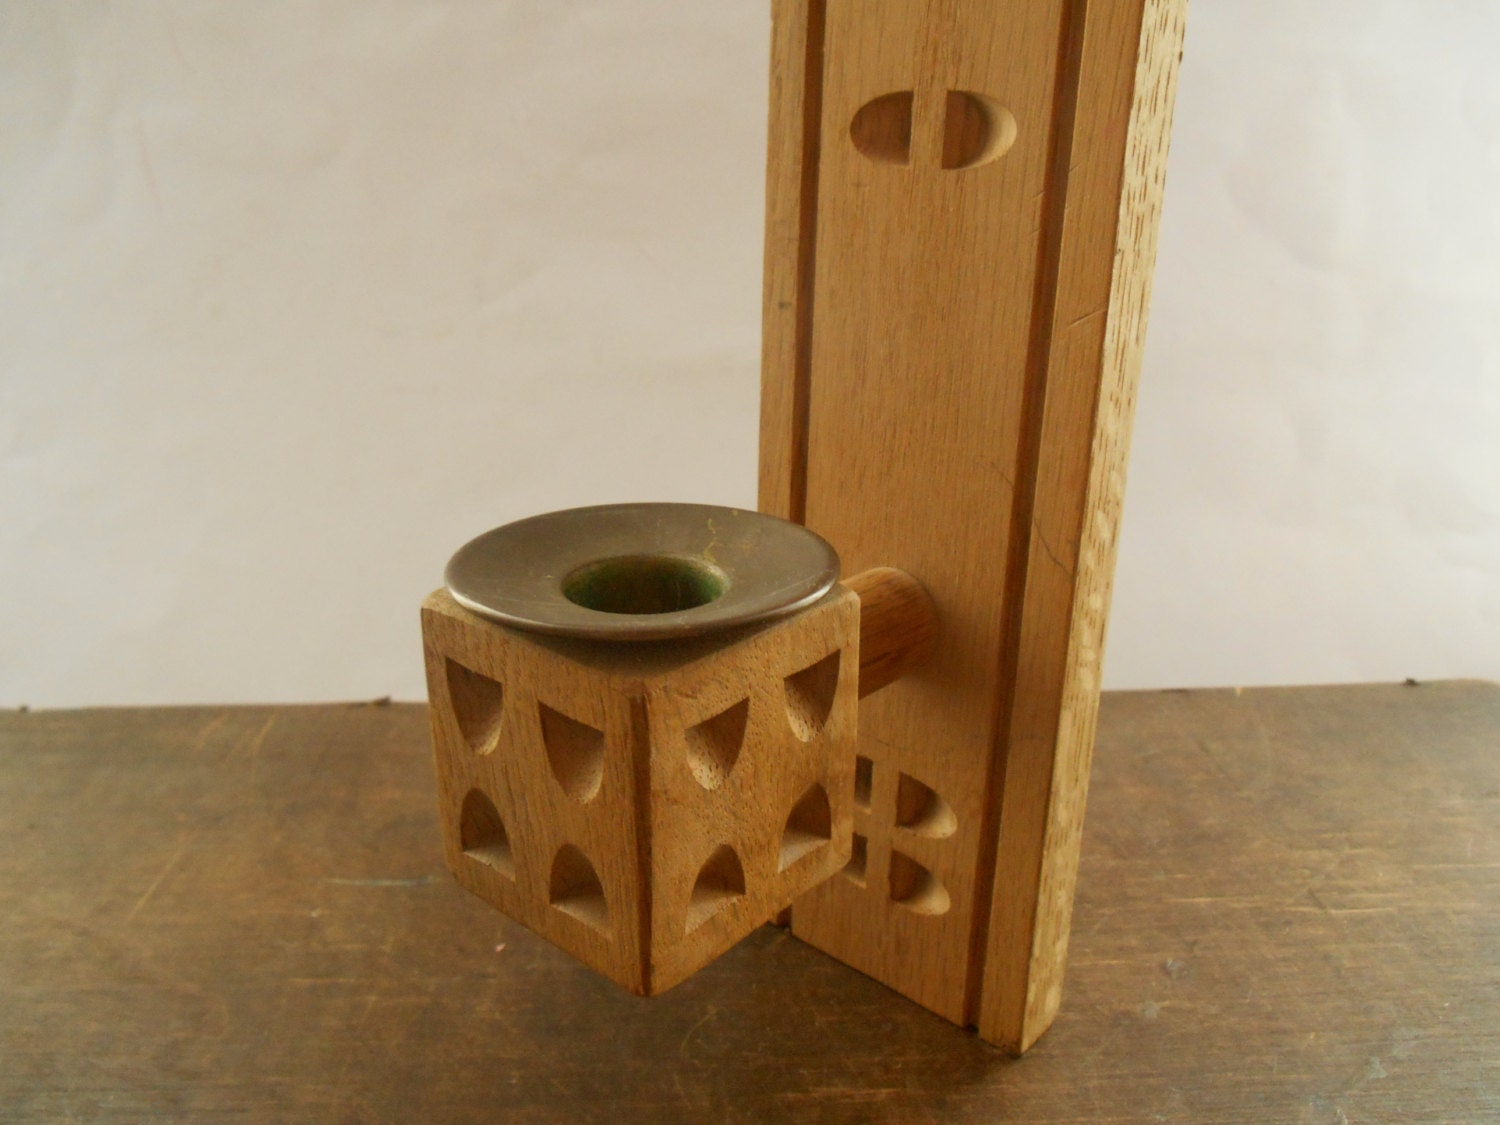 Wood Wall Sconce Candle Holder : Wooden wall candle holder Handmade wall sconce by TasteVintage